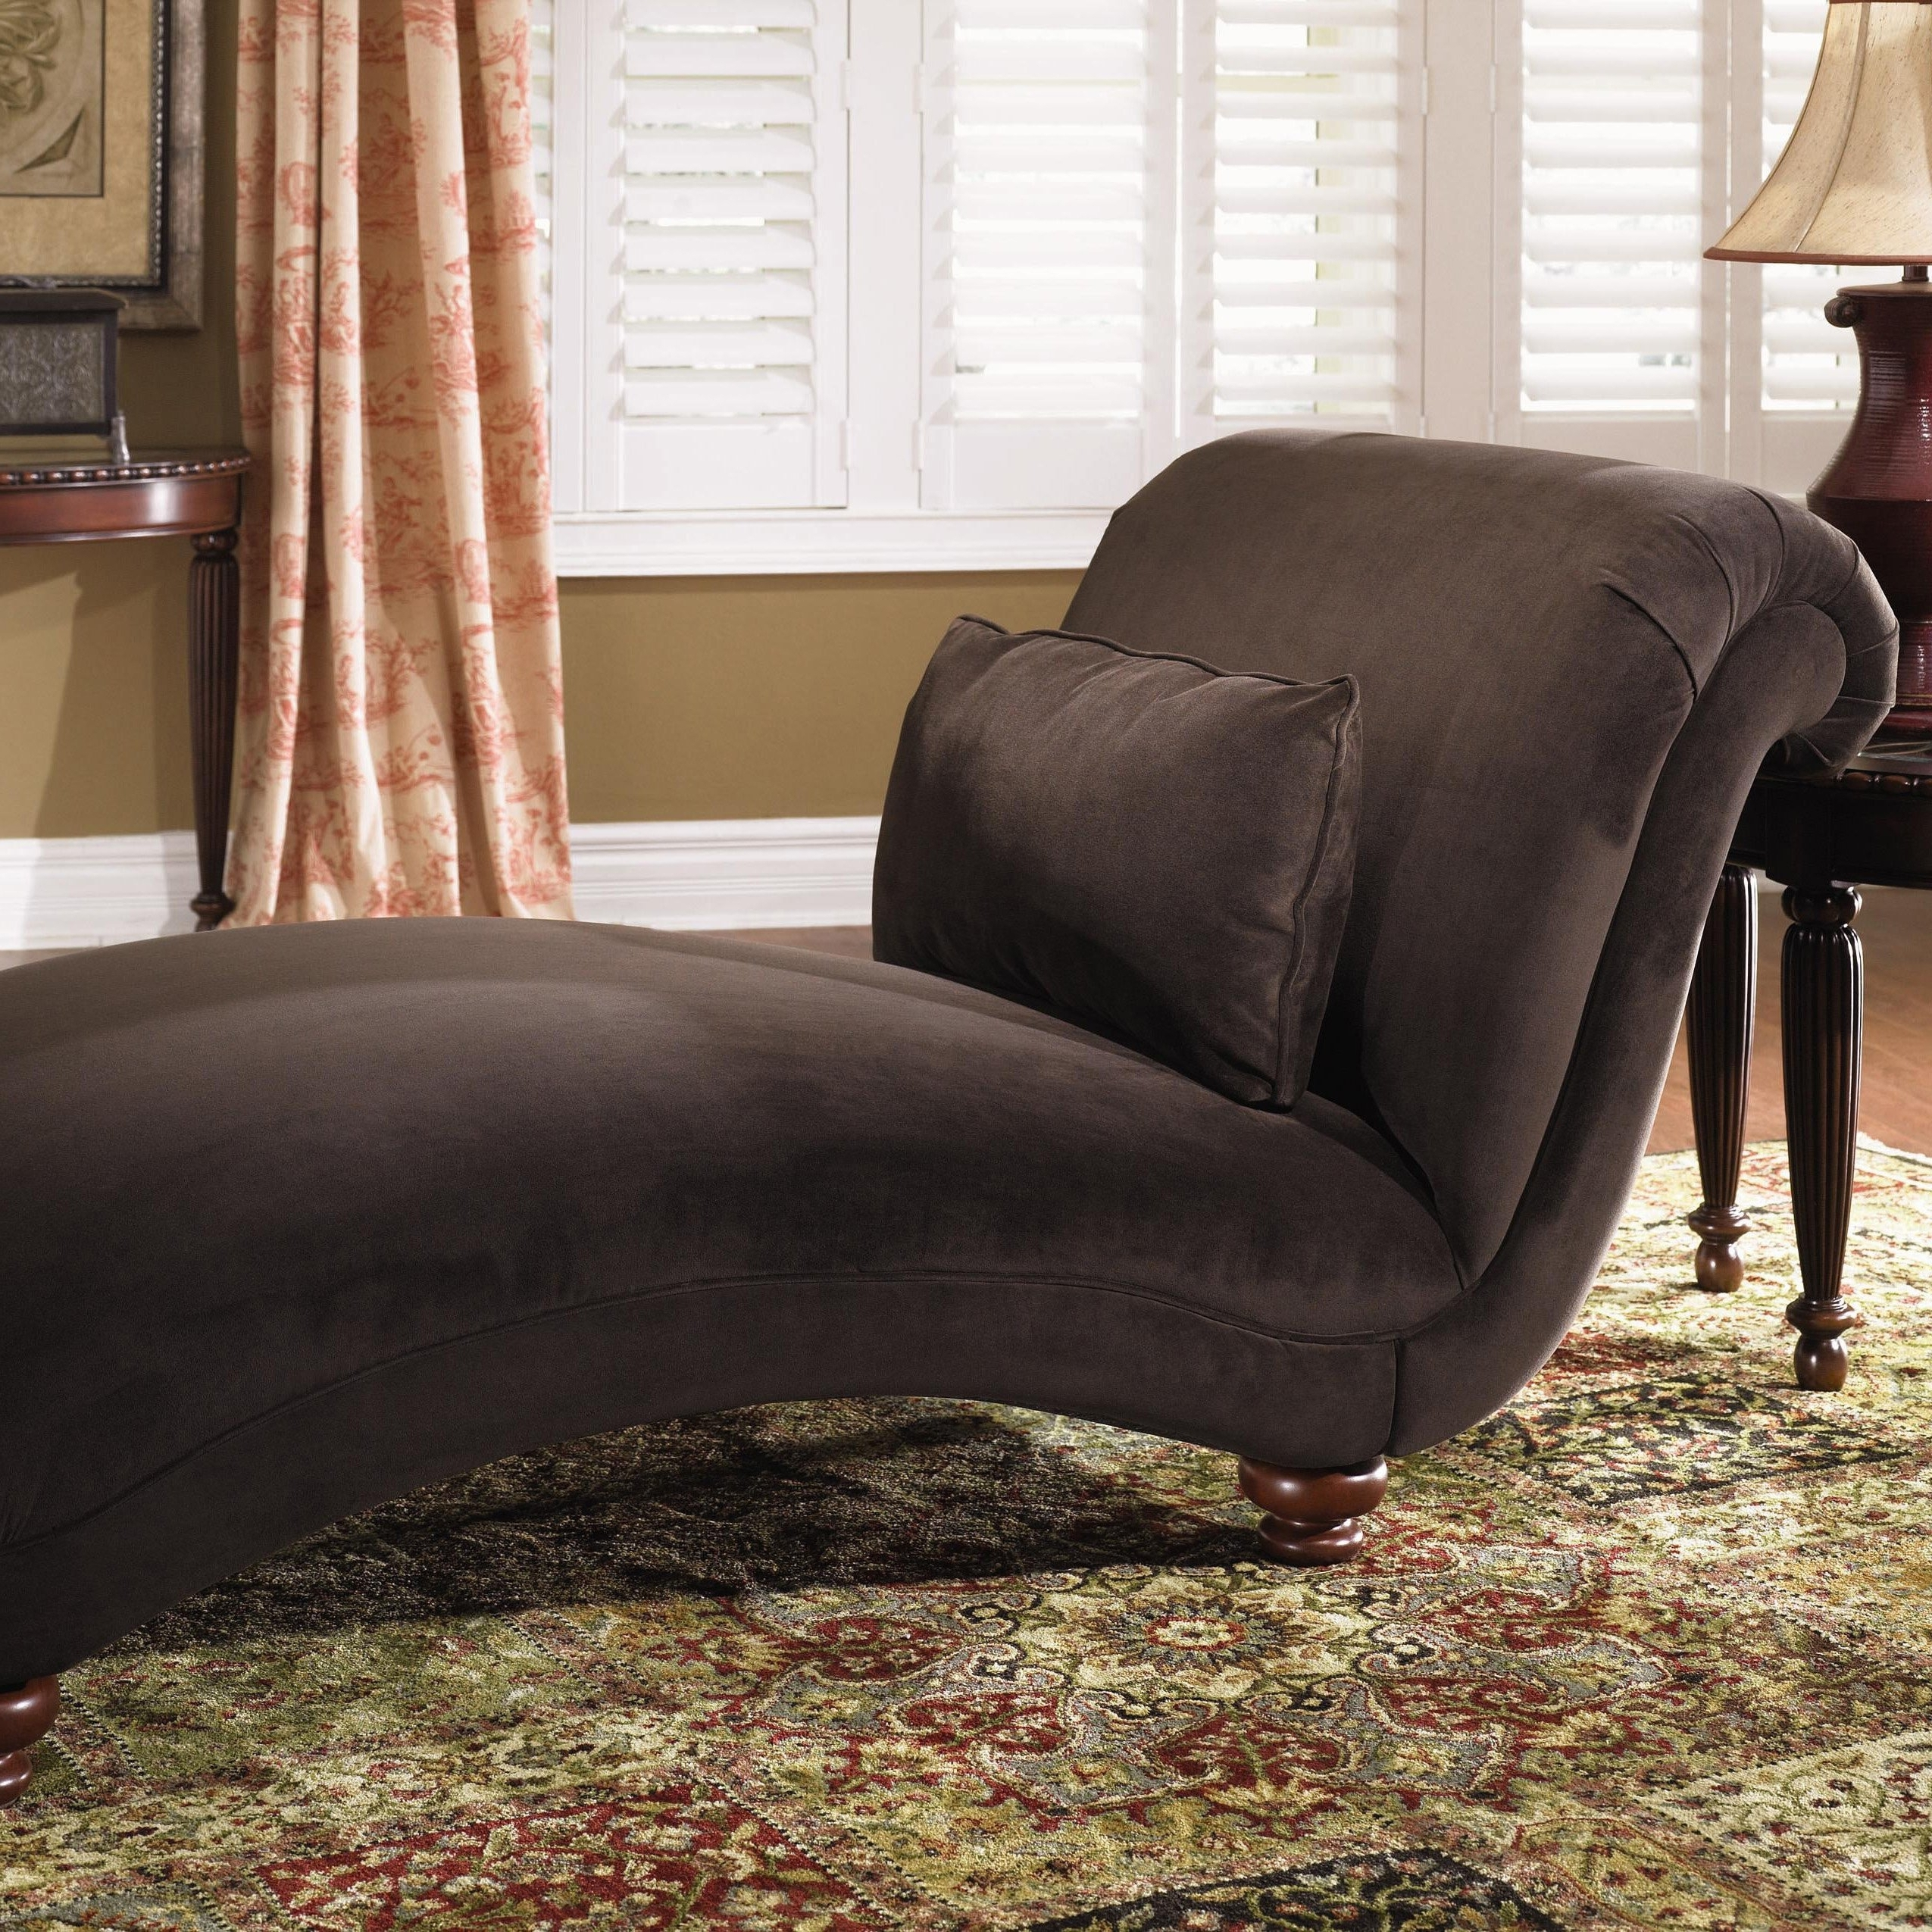 Leather Chaise Lounges Inside Current Chaise Lounge Chairs Indoor Leather • Lounge Chairs Ideas (View 9 of 15)